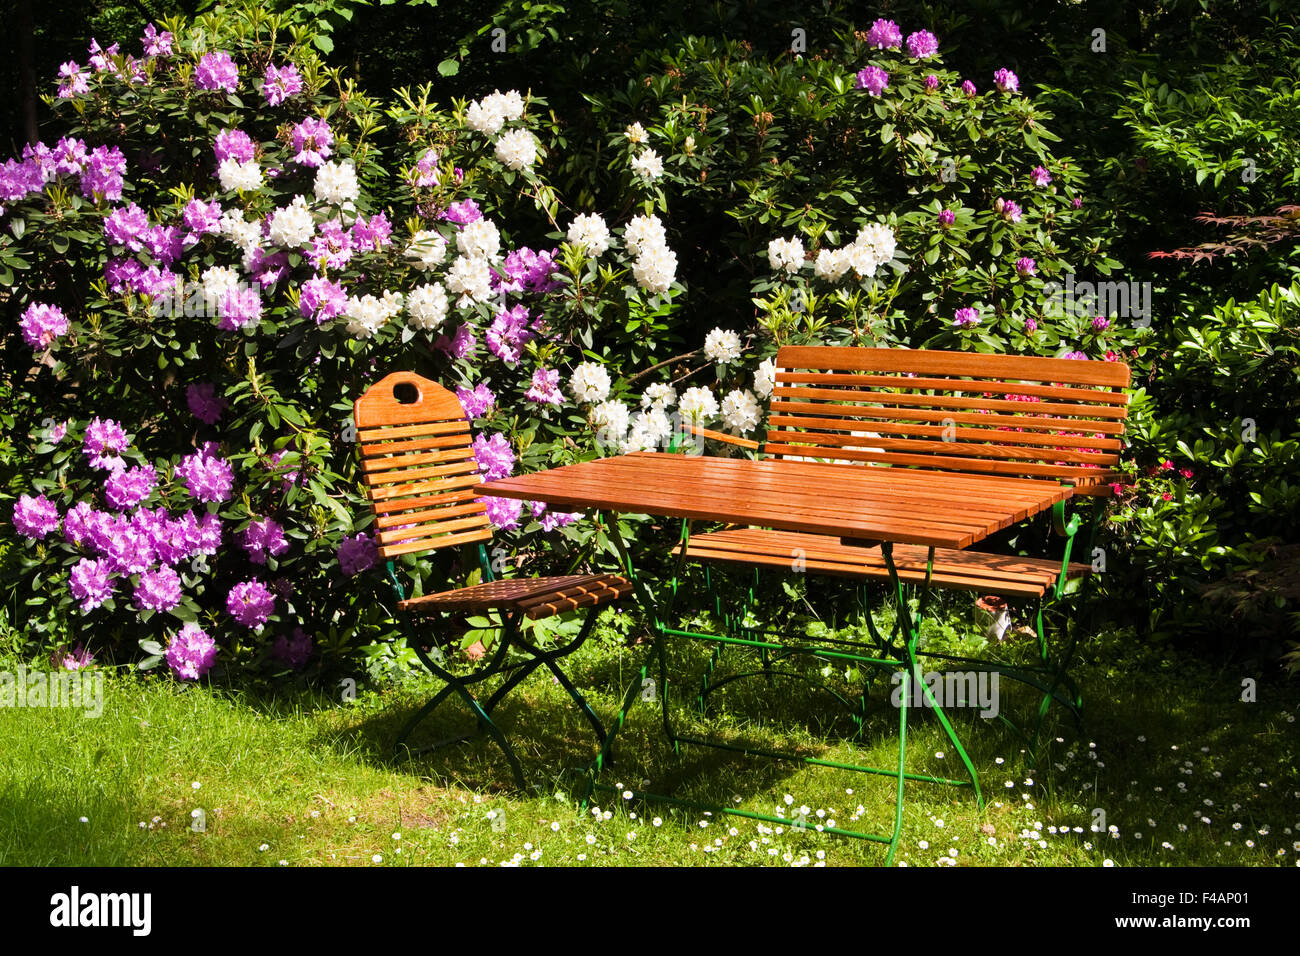 im garten stockfotos im garten bilder alamy. Black Bedroom Furniture Sets. Home Design Ideas